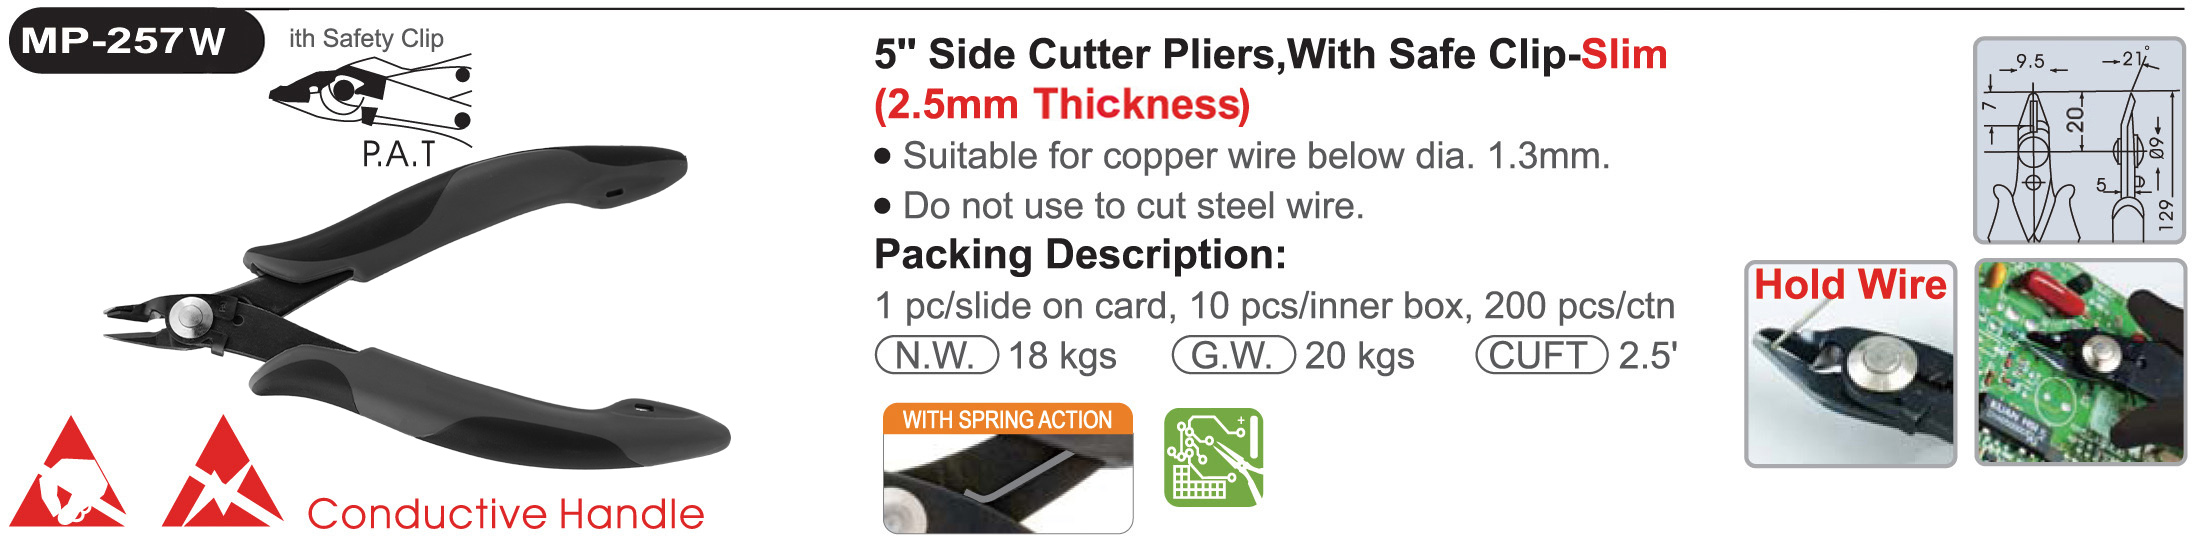 proimages/product/pliers/cutting_pliers/Electronics_Diagonal_Cutters_ESD/MP-257W/MP-257W.jpg